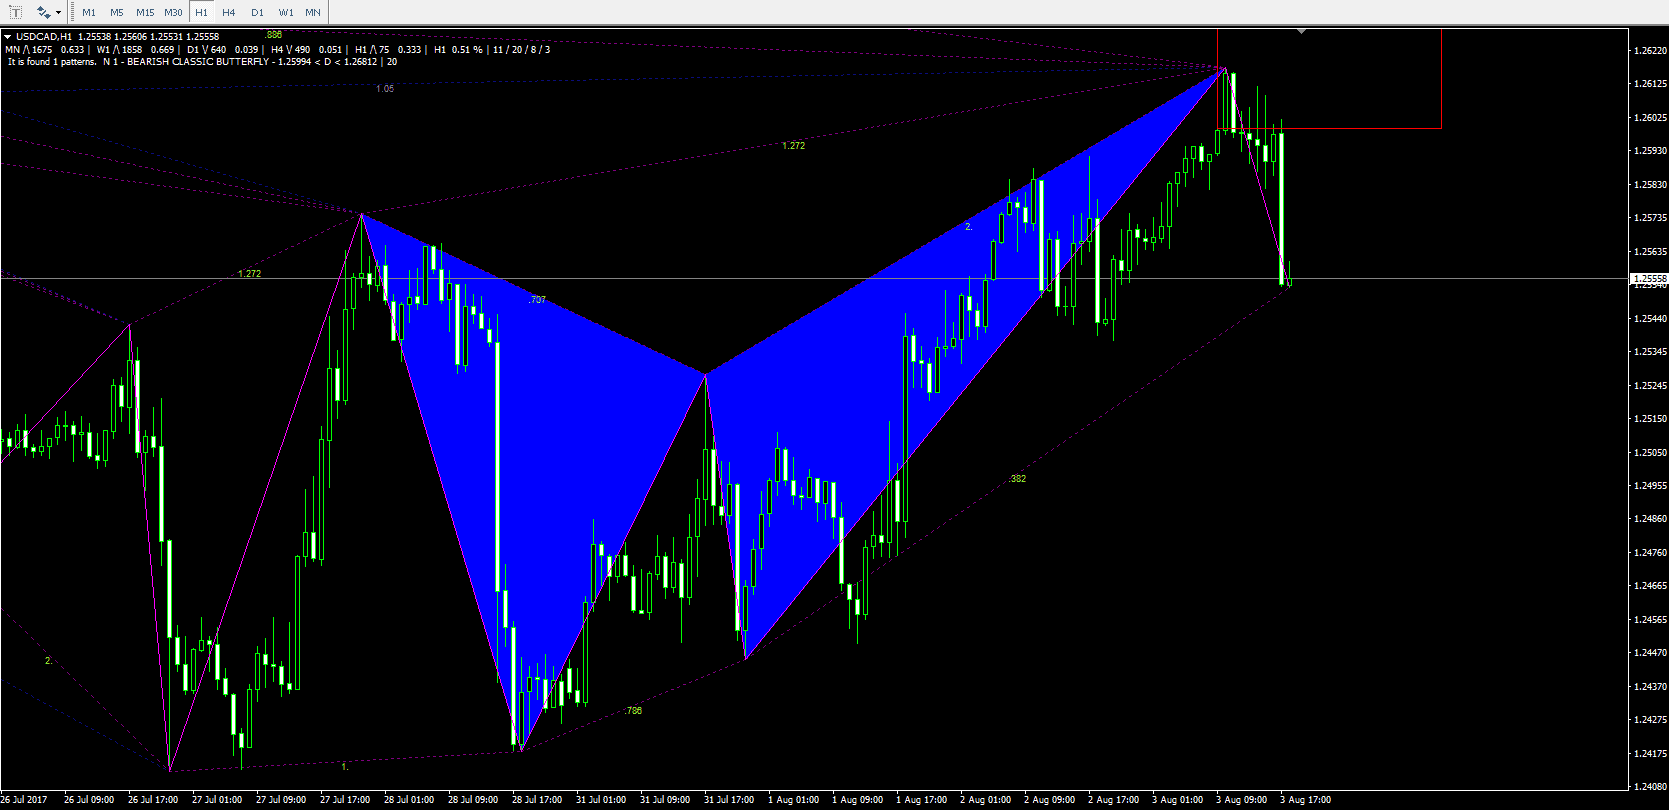 USD/CAD gartley butterfly